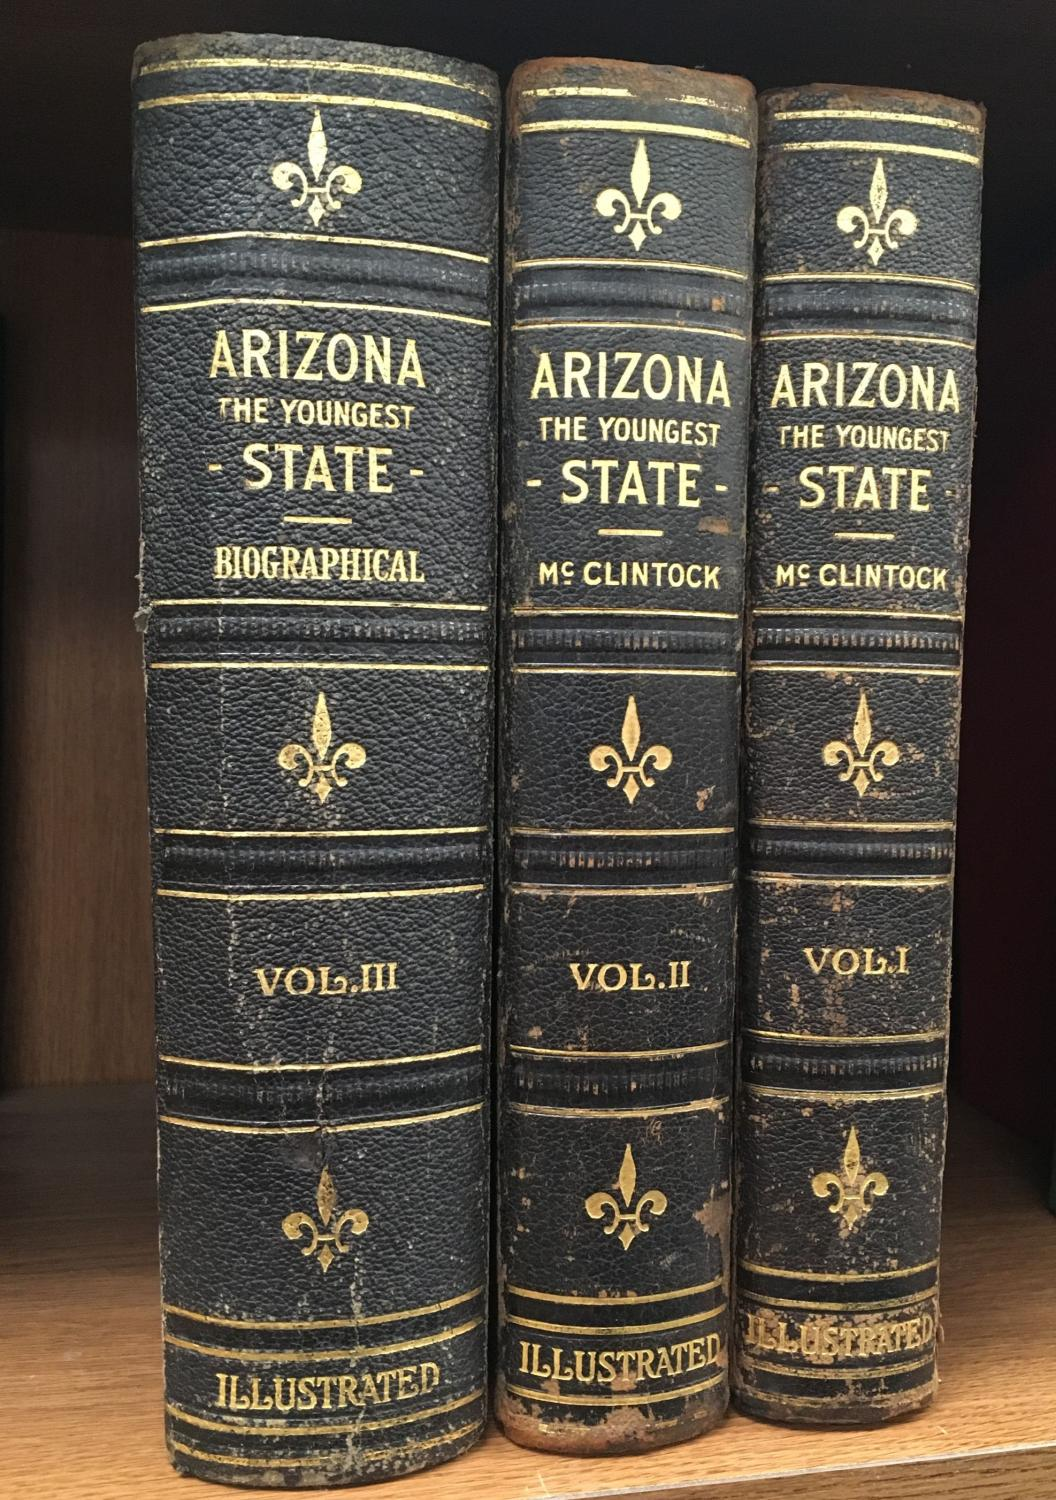 Arizona; Prehistoric--Aboriginal--Pioneer--Modern; the Nation's Youngest Commonwealth Within a Land of Ancient Culture, 3 Vol. Set McClintock, James